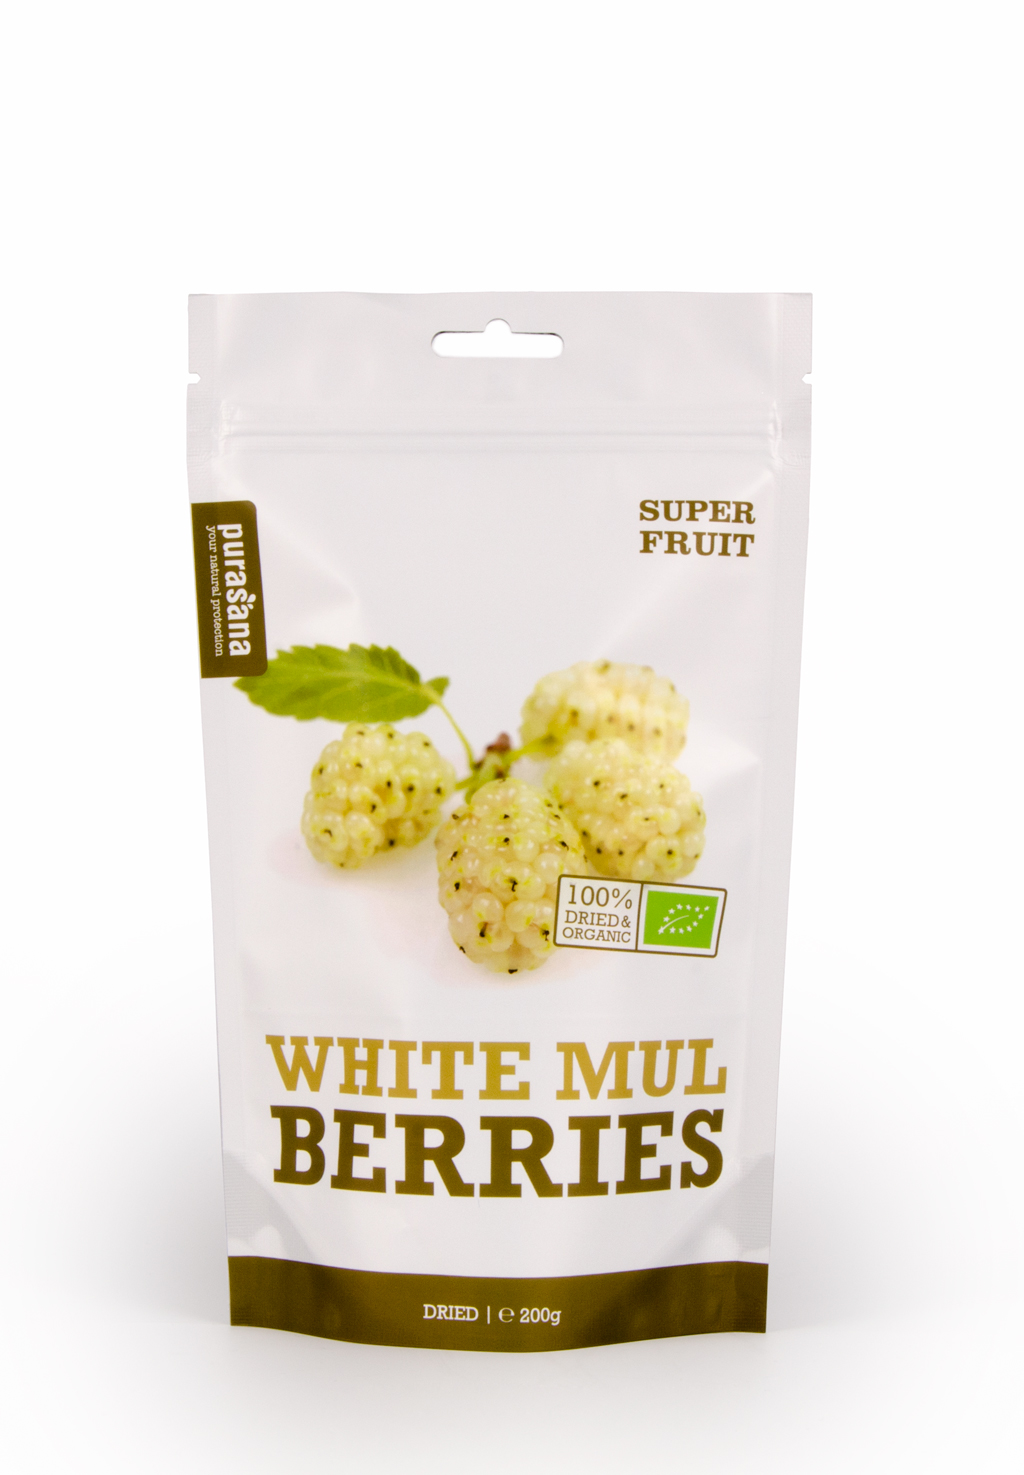 WHITE MULBERRIES FRONT